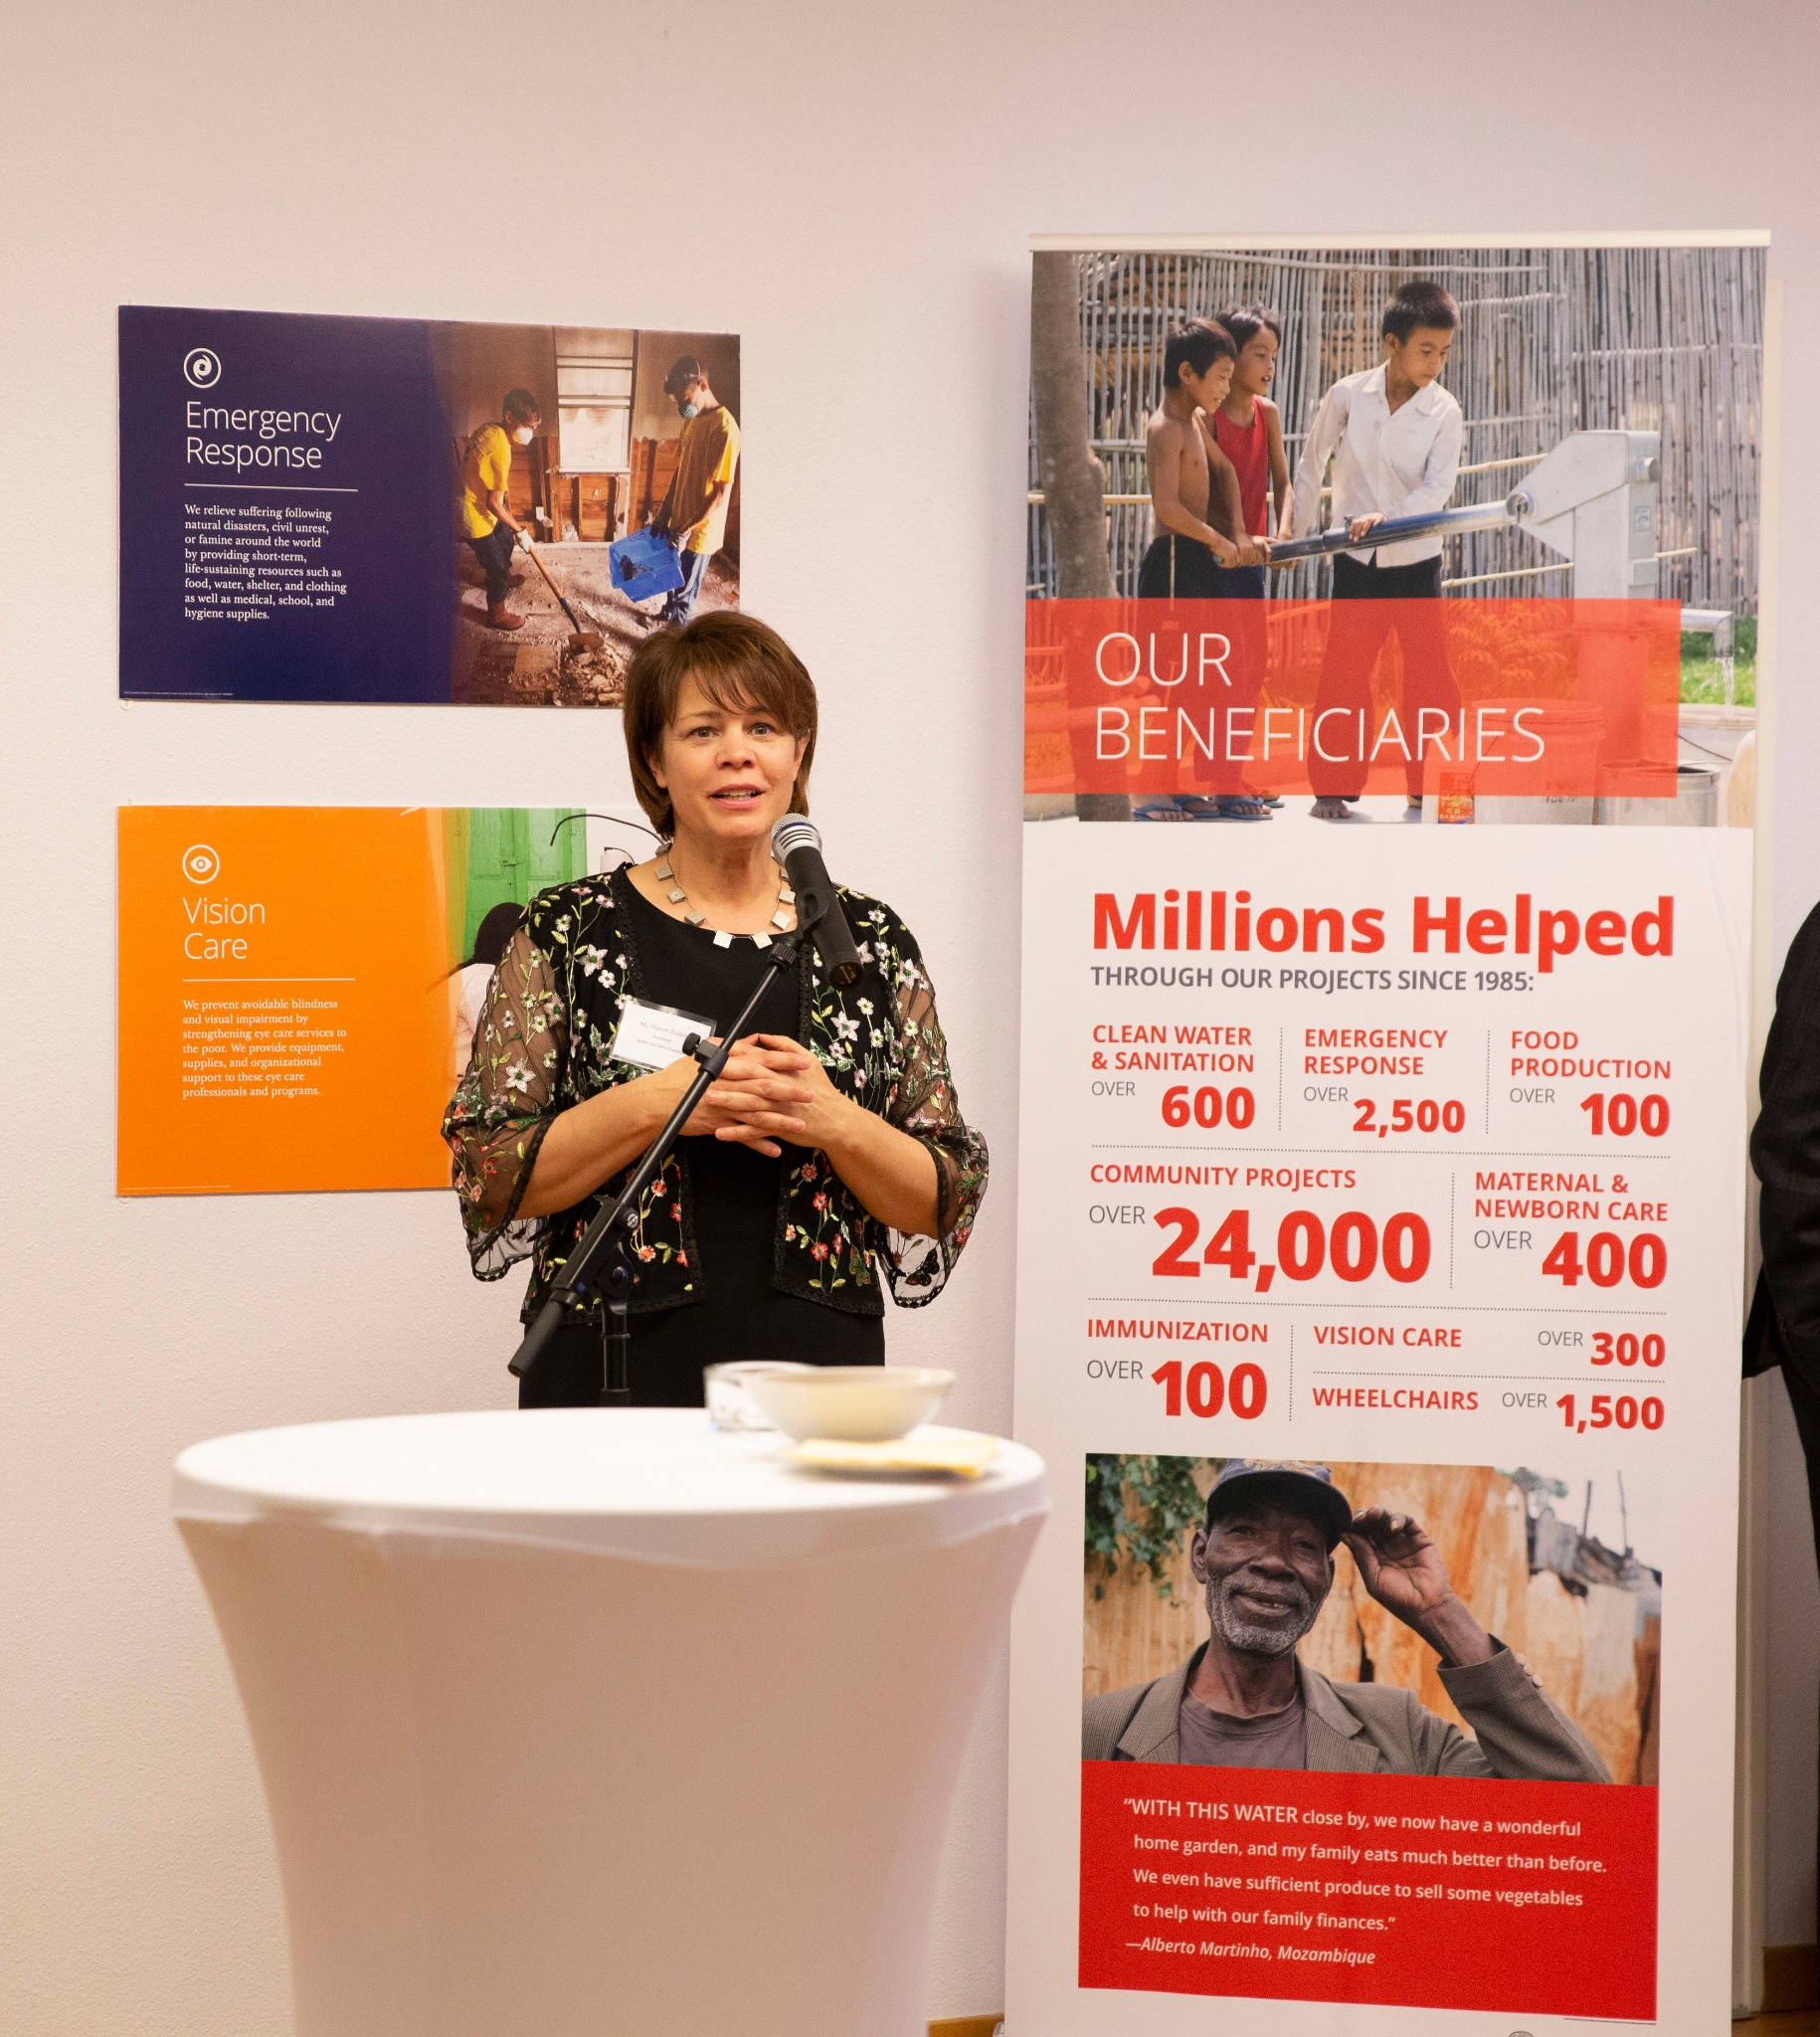 Sister Sharon Eubank, president of Latter-day Saint Charities, presents about the organization during a reception in Geneva, Switzerland, on Sept. 16, 2019.